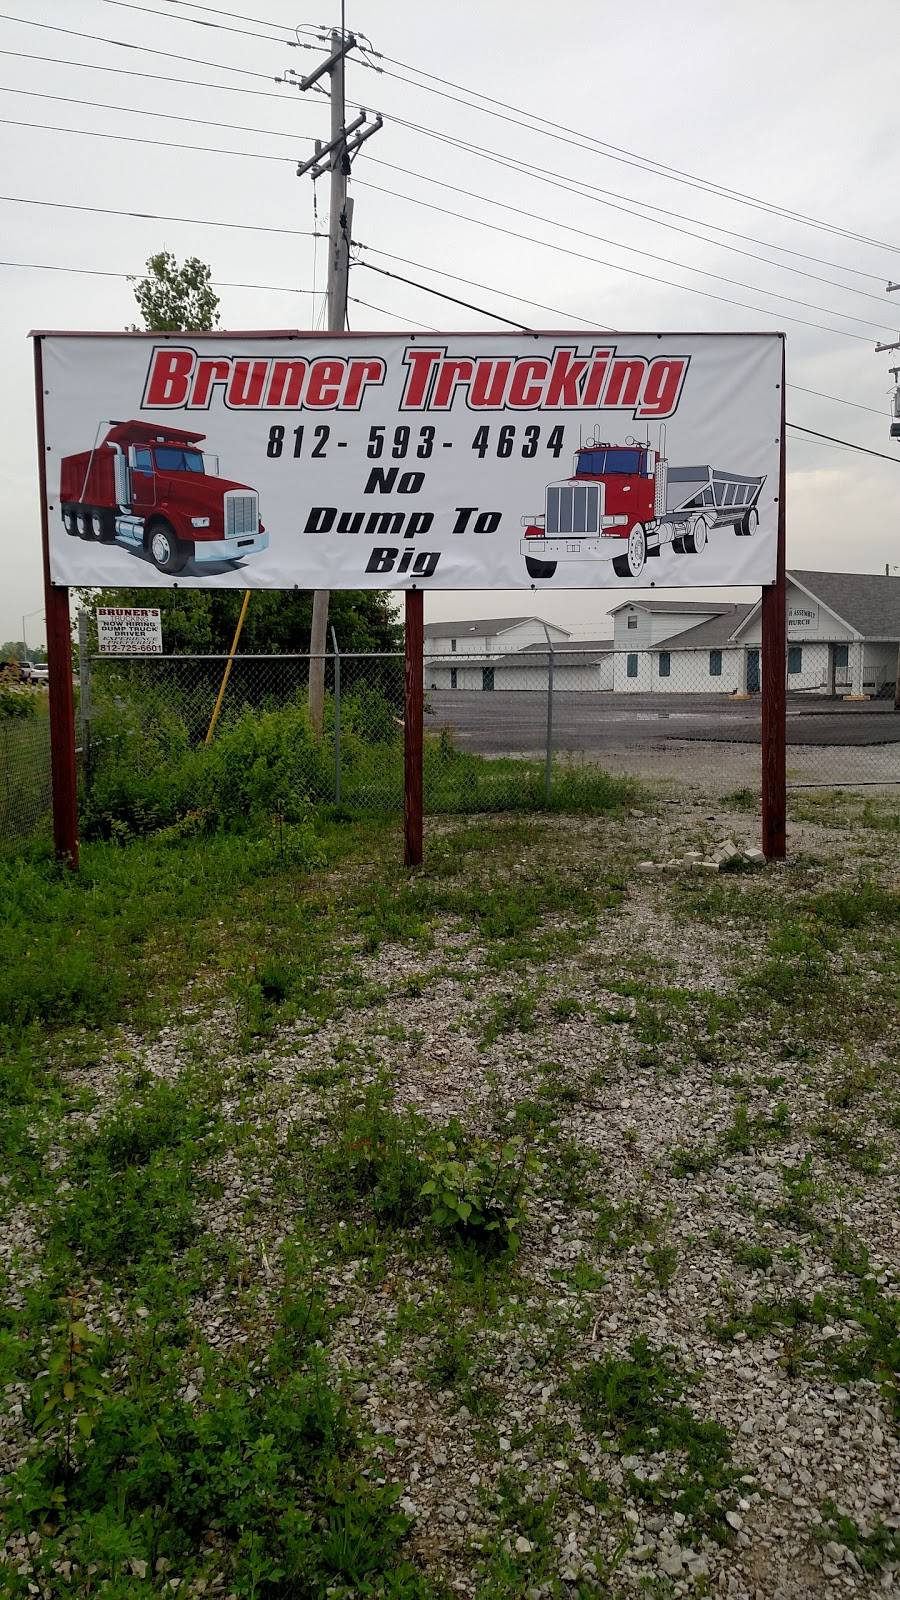 Bruners Trucking - moving company  | Photo 7 of 8 | Address: 1720b Old Potters Ln, Clarksville, IN 47129, USA | Phone: (812) 593-4634